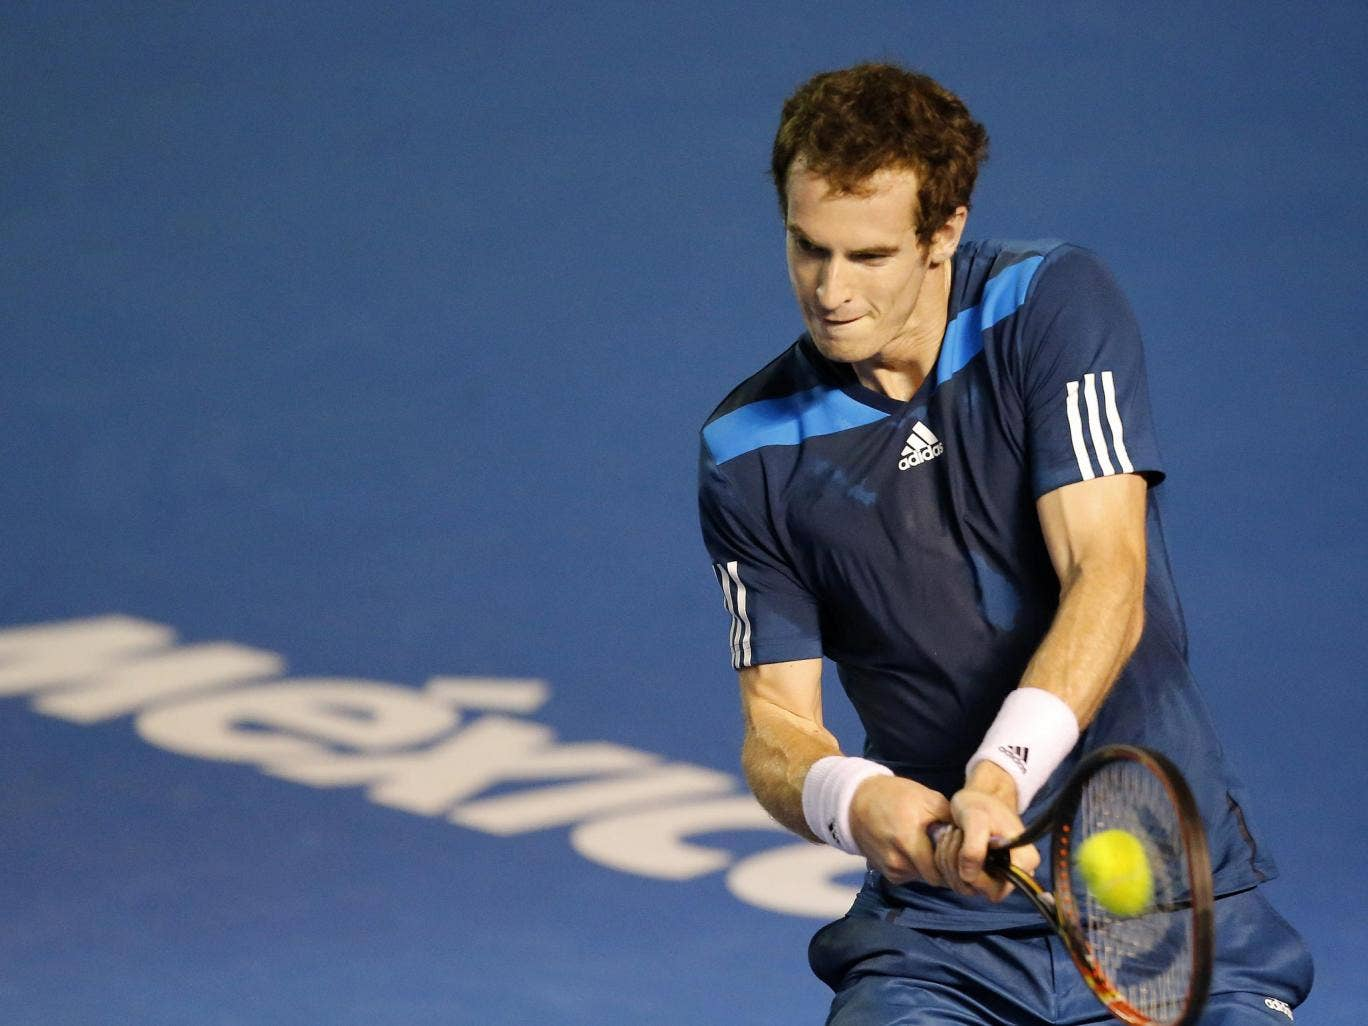 Andy Murray beat Giles Simon in the Abierto Mexicano Telcel quarter-finals